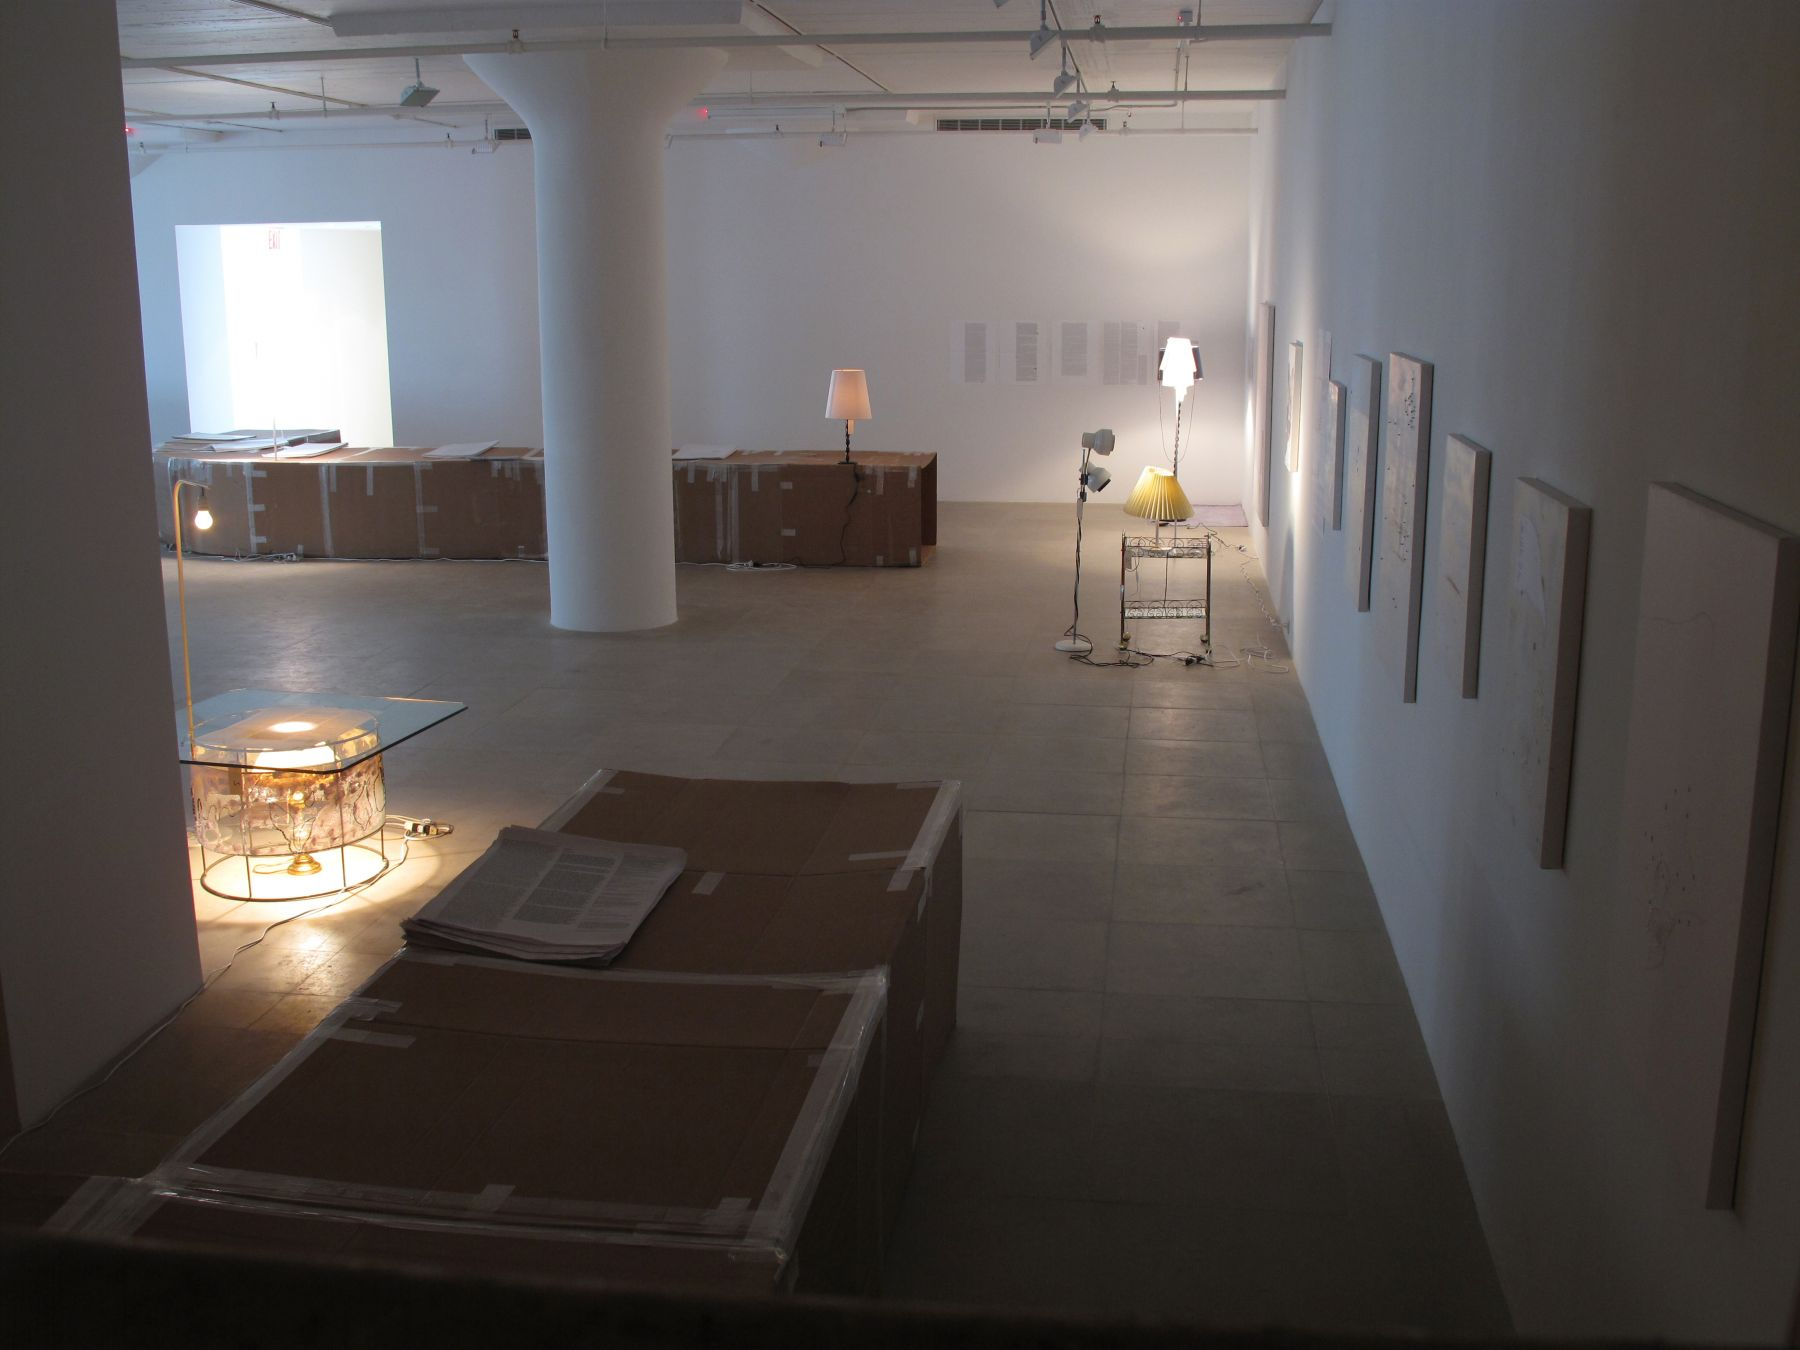 josef strau, Installation view, 18INIQITIES, Greene Naftali, New York, 2008